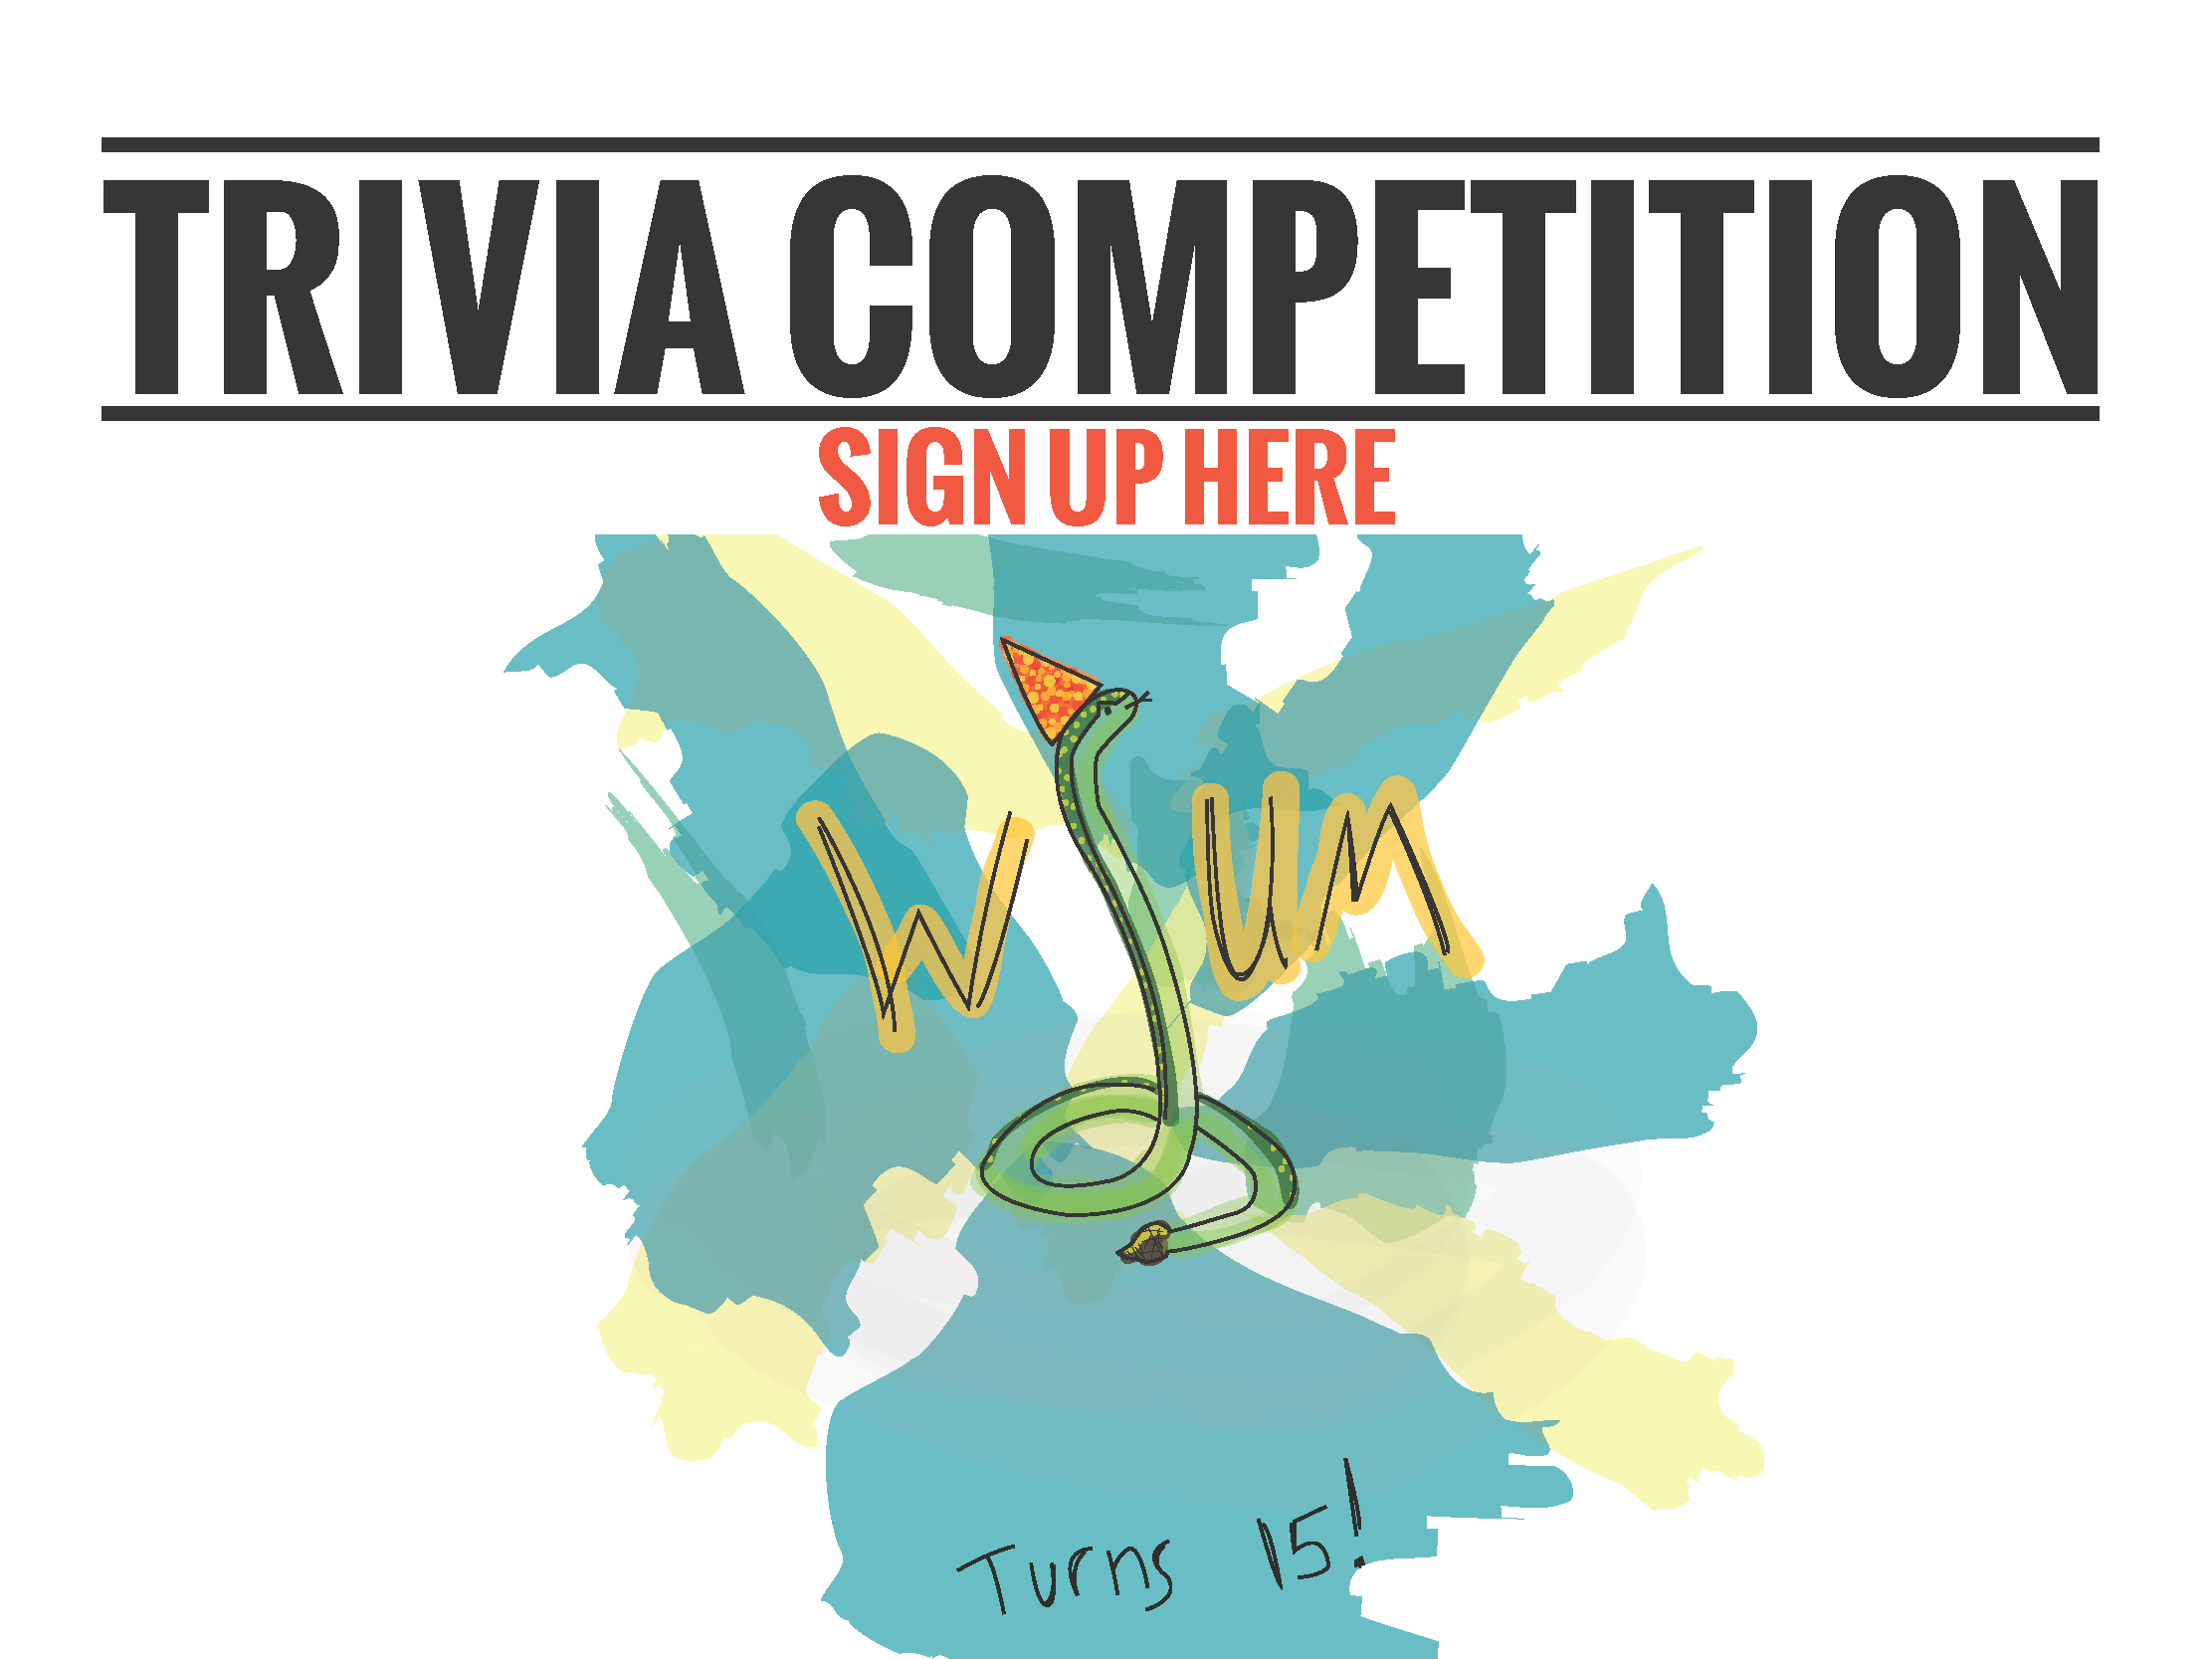 WSUM Trivia Competition